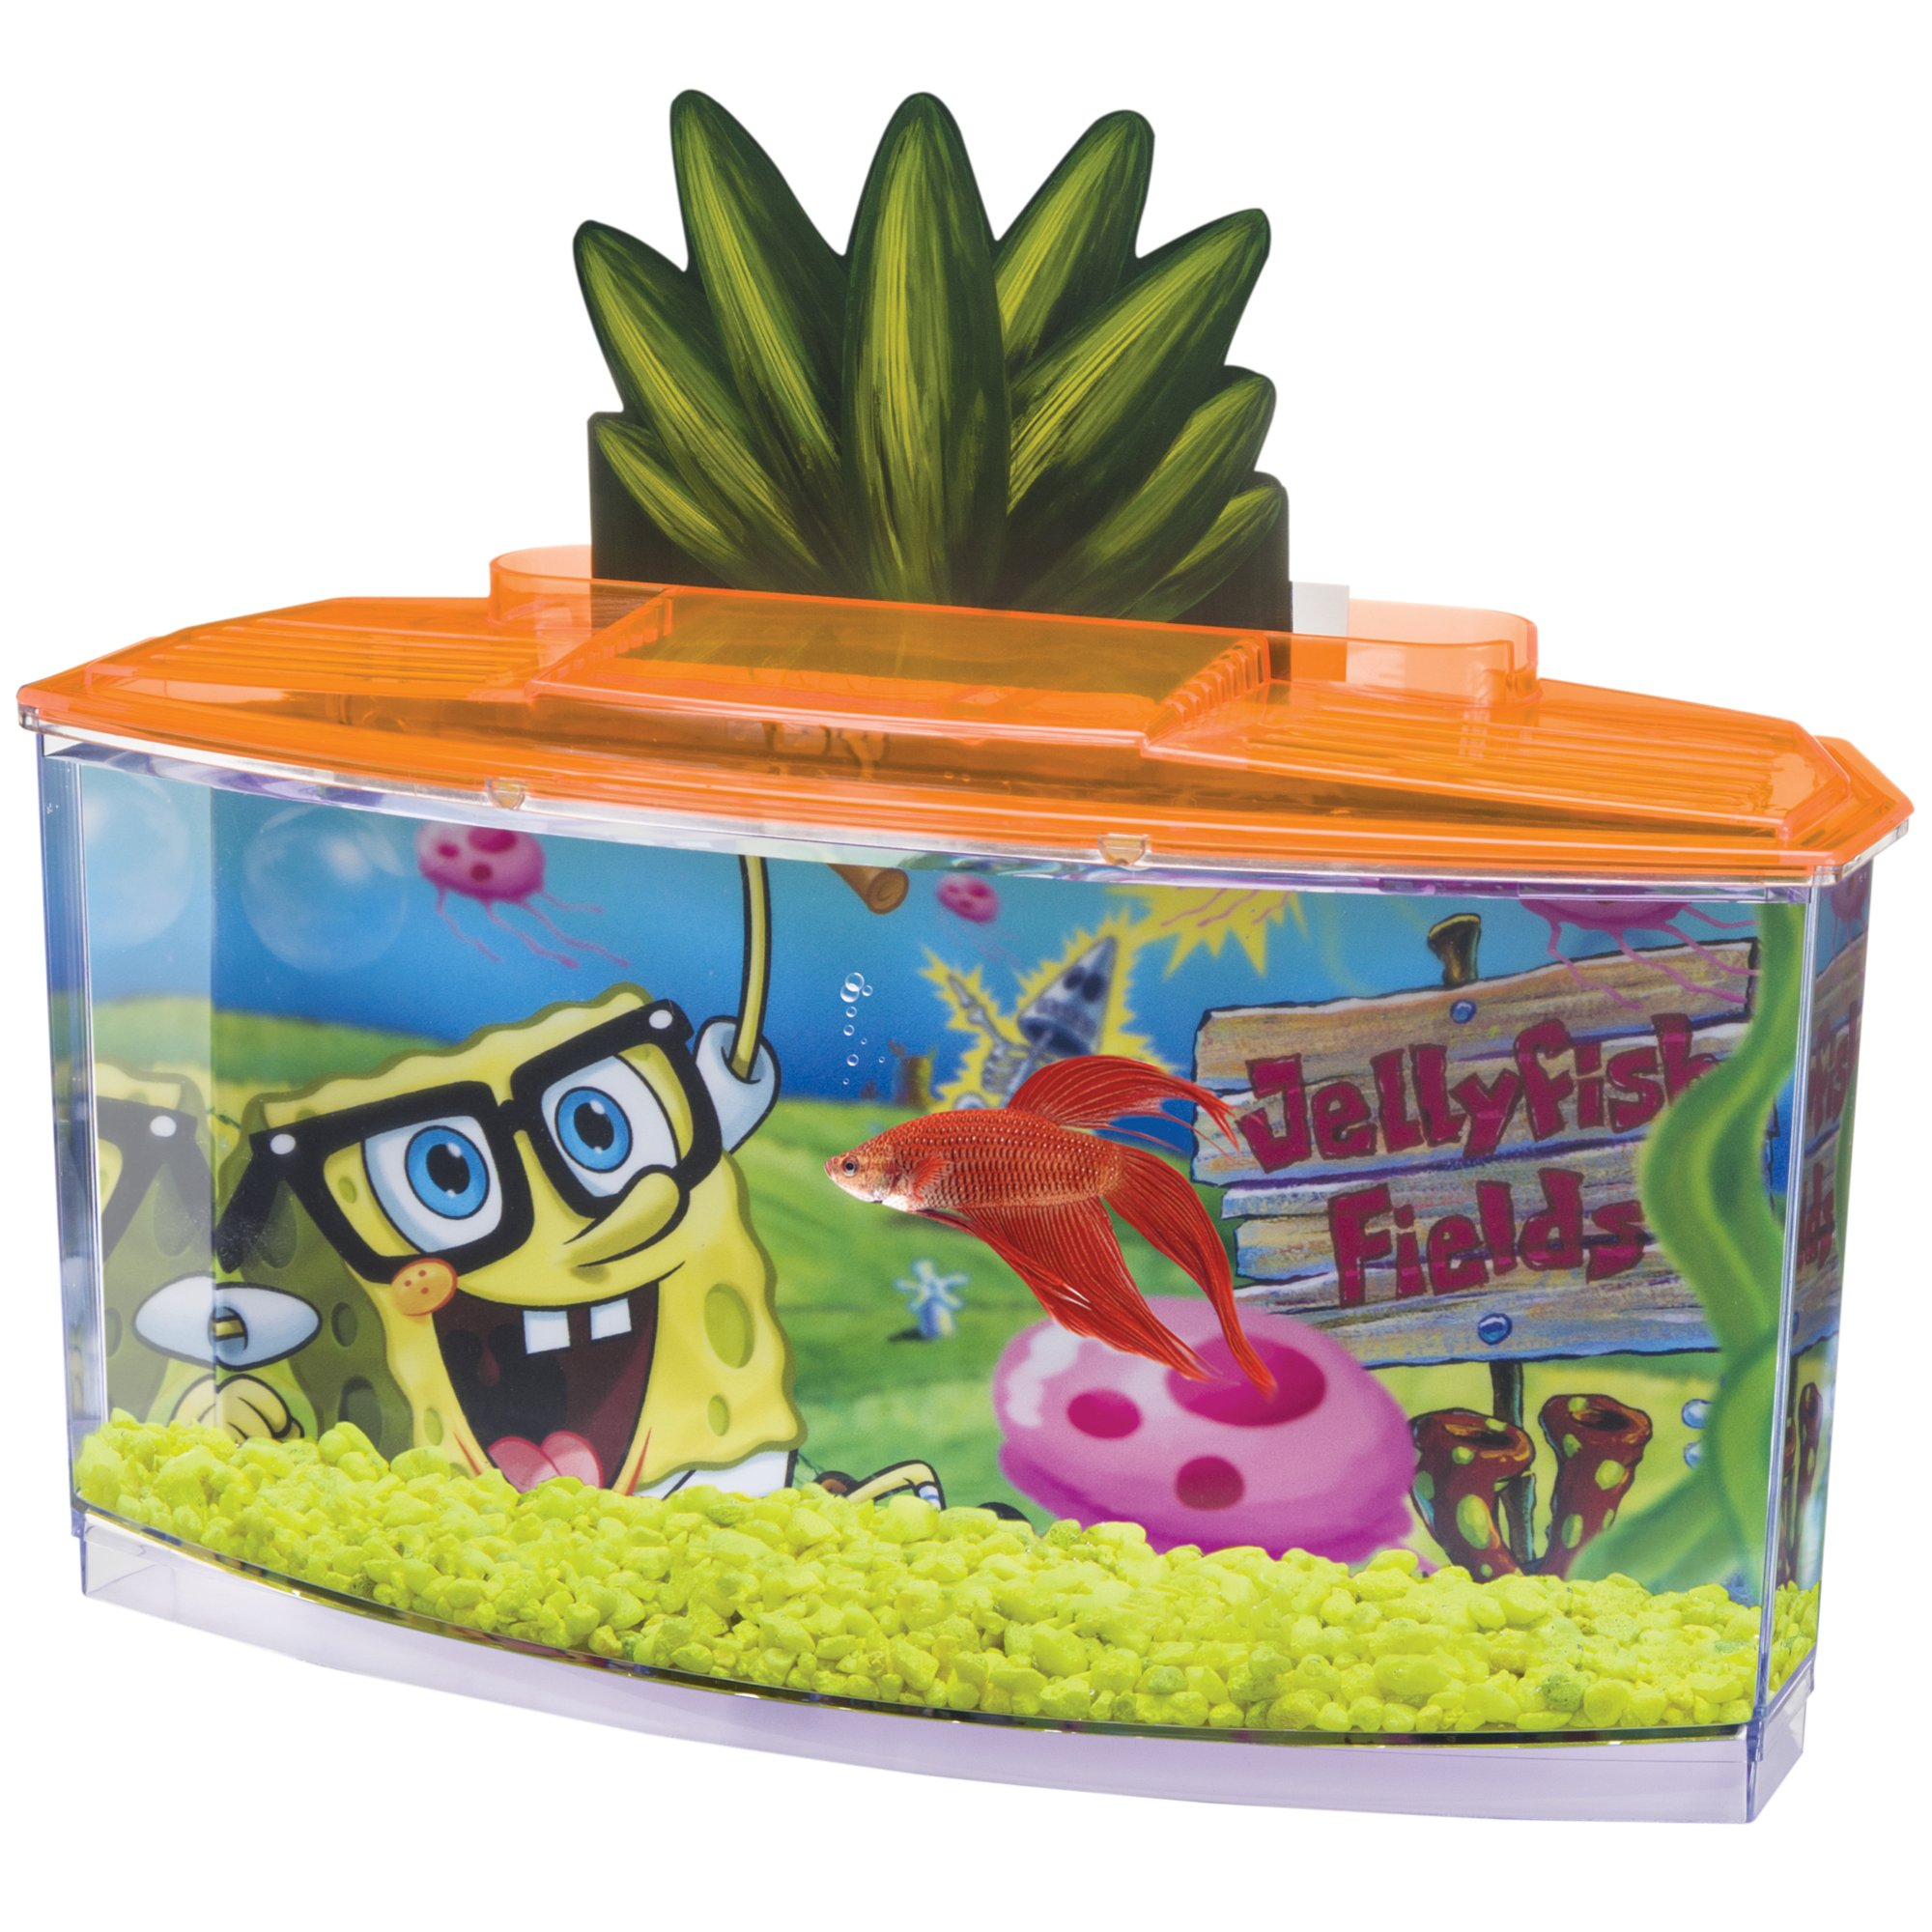 Penn Plax SpongeBob Squarepants Betta Aquarium Kit, 0.7 Gallon | Petco